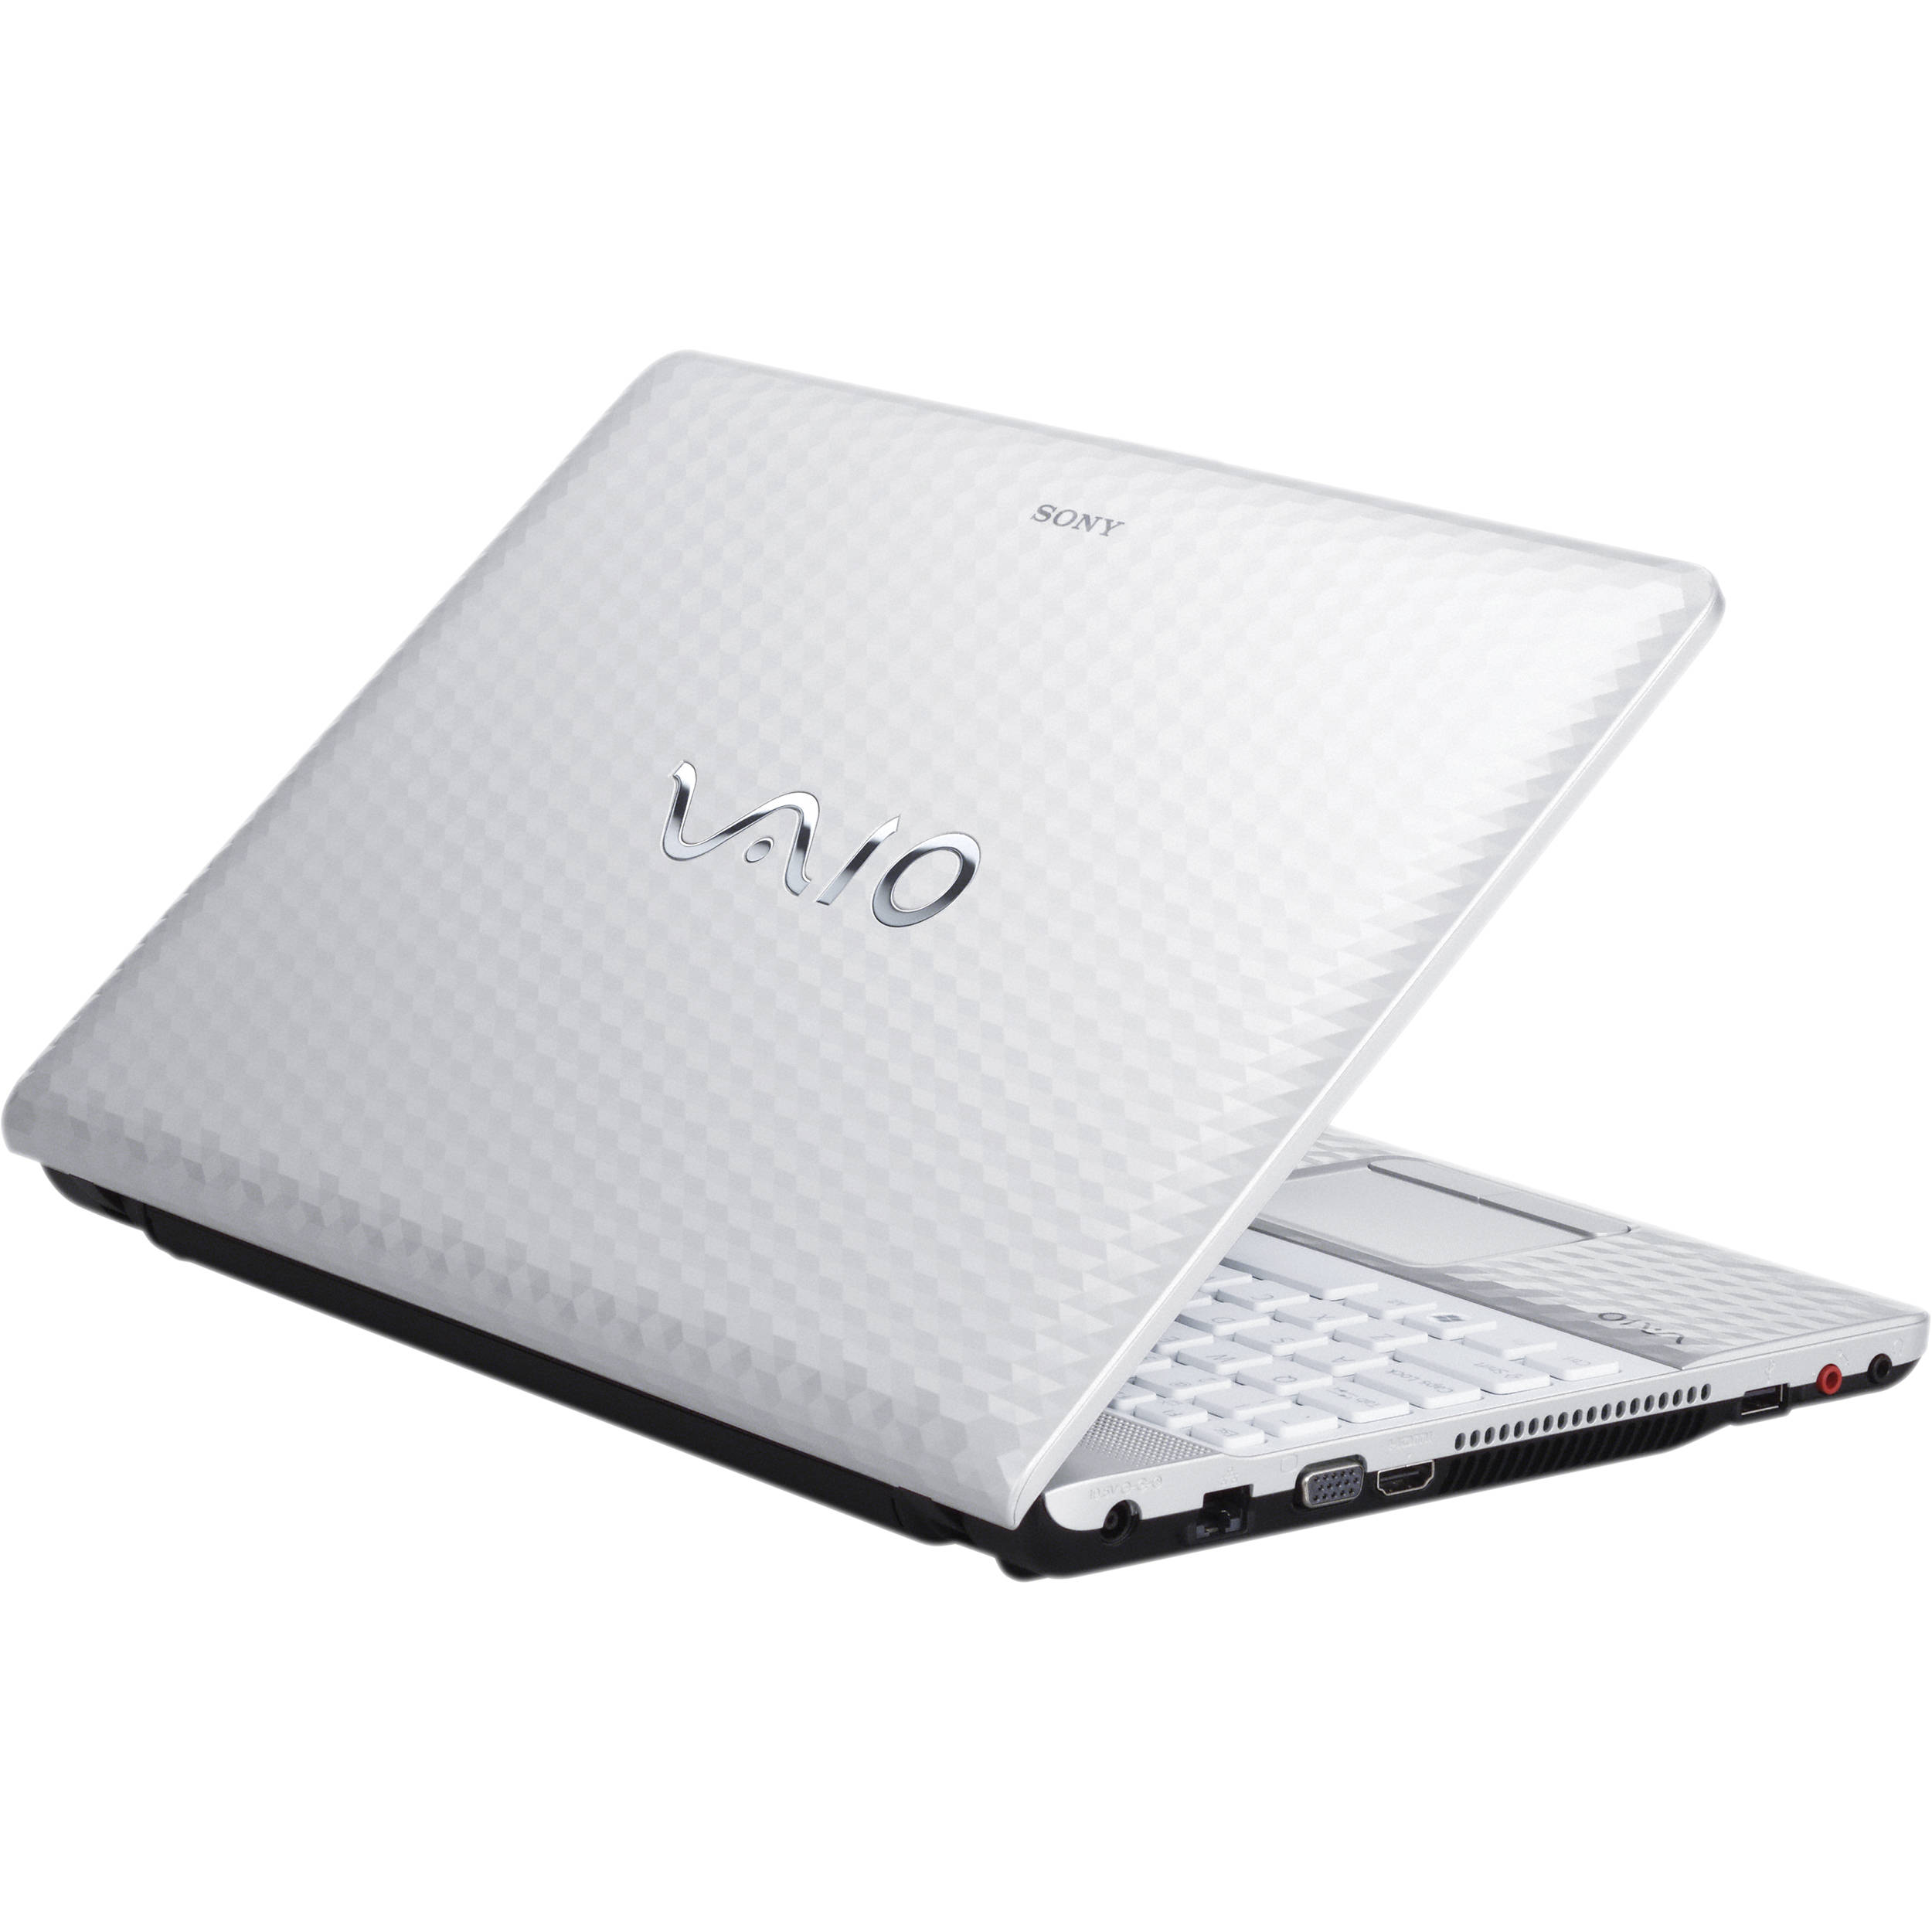 Sony Vaio VPCEL13FX Windows 8 X64 Treiber